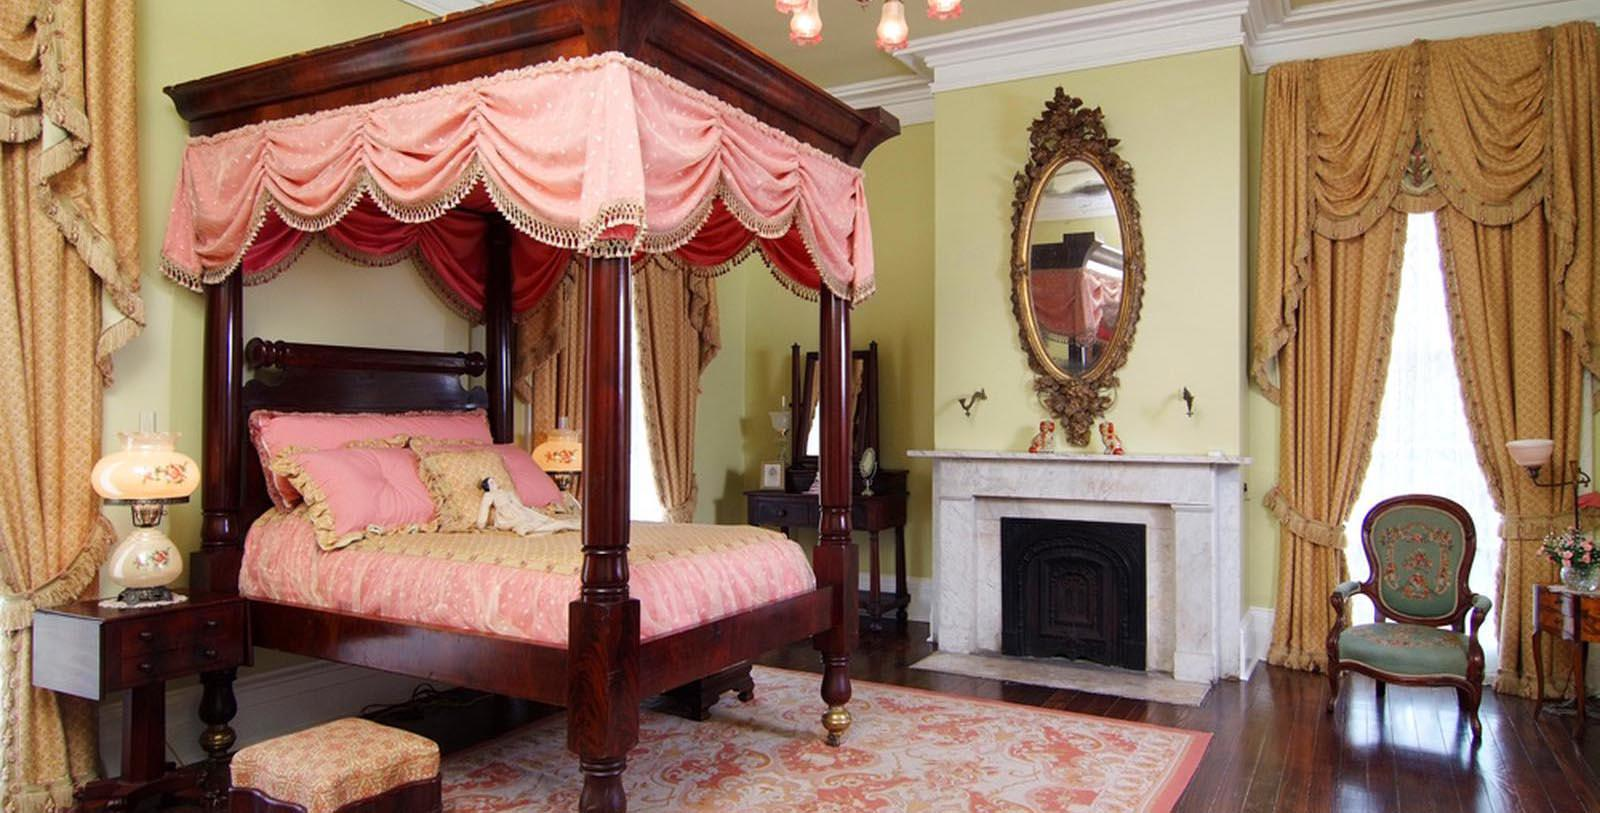 Image of Guestroom Interior, Nottoway Plantation and Resort, White Castle, Louisiana, 1859, Member of Historic Hotels of America, Location Map